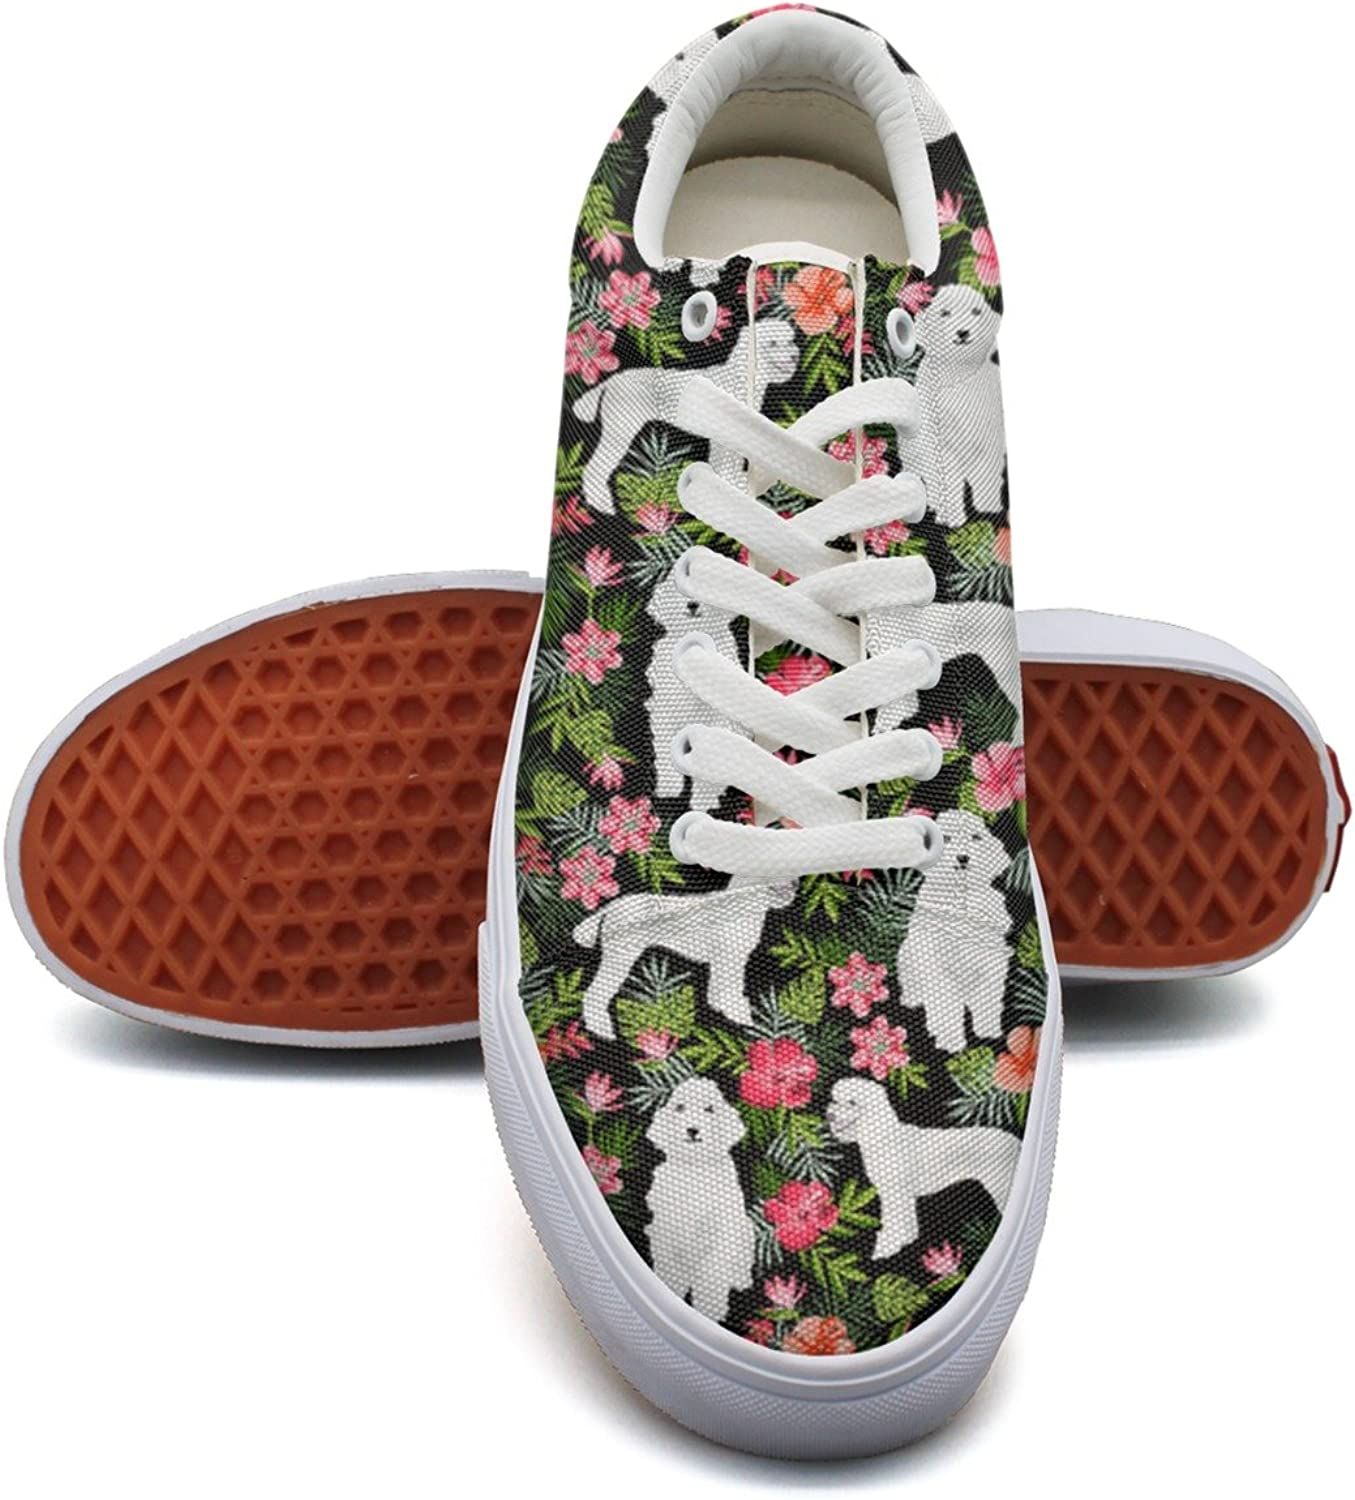 White Poodle Dog Hawaiian Floral Womens Flat Sneakers shoes Low Top Neon Cloth shoes for Women's